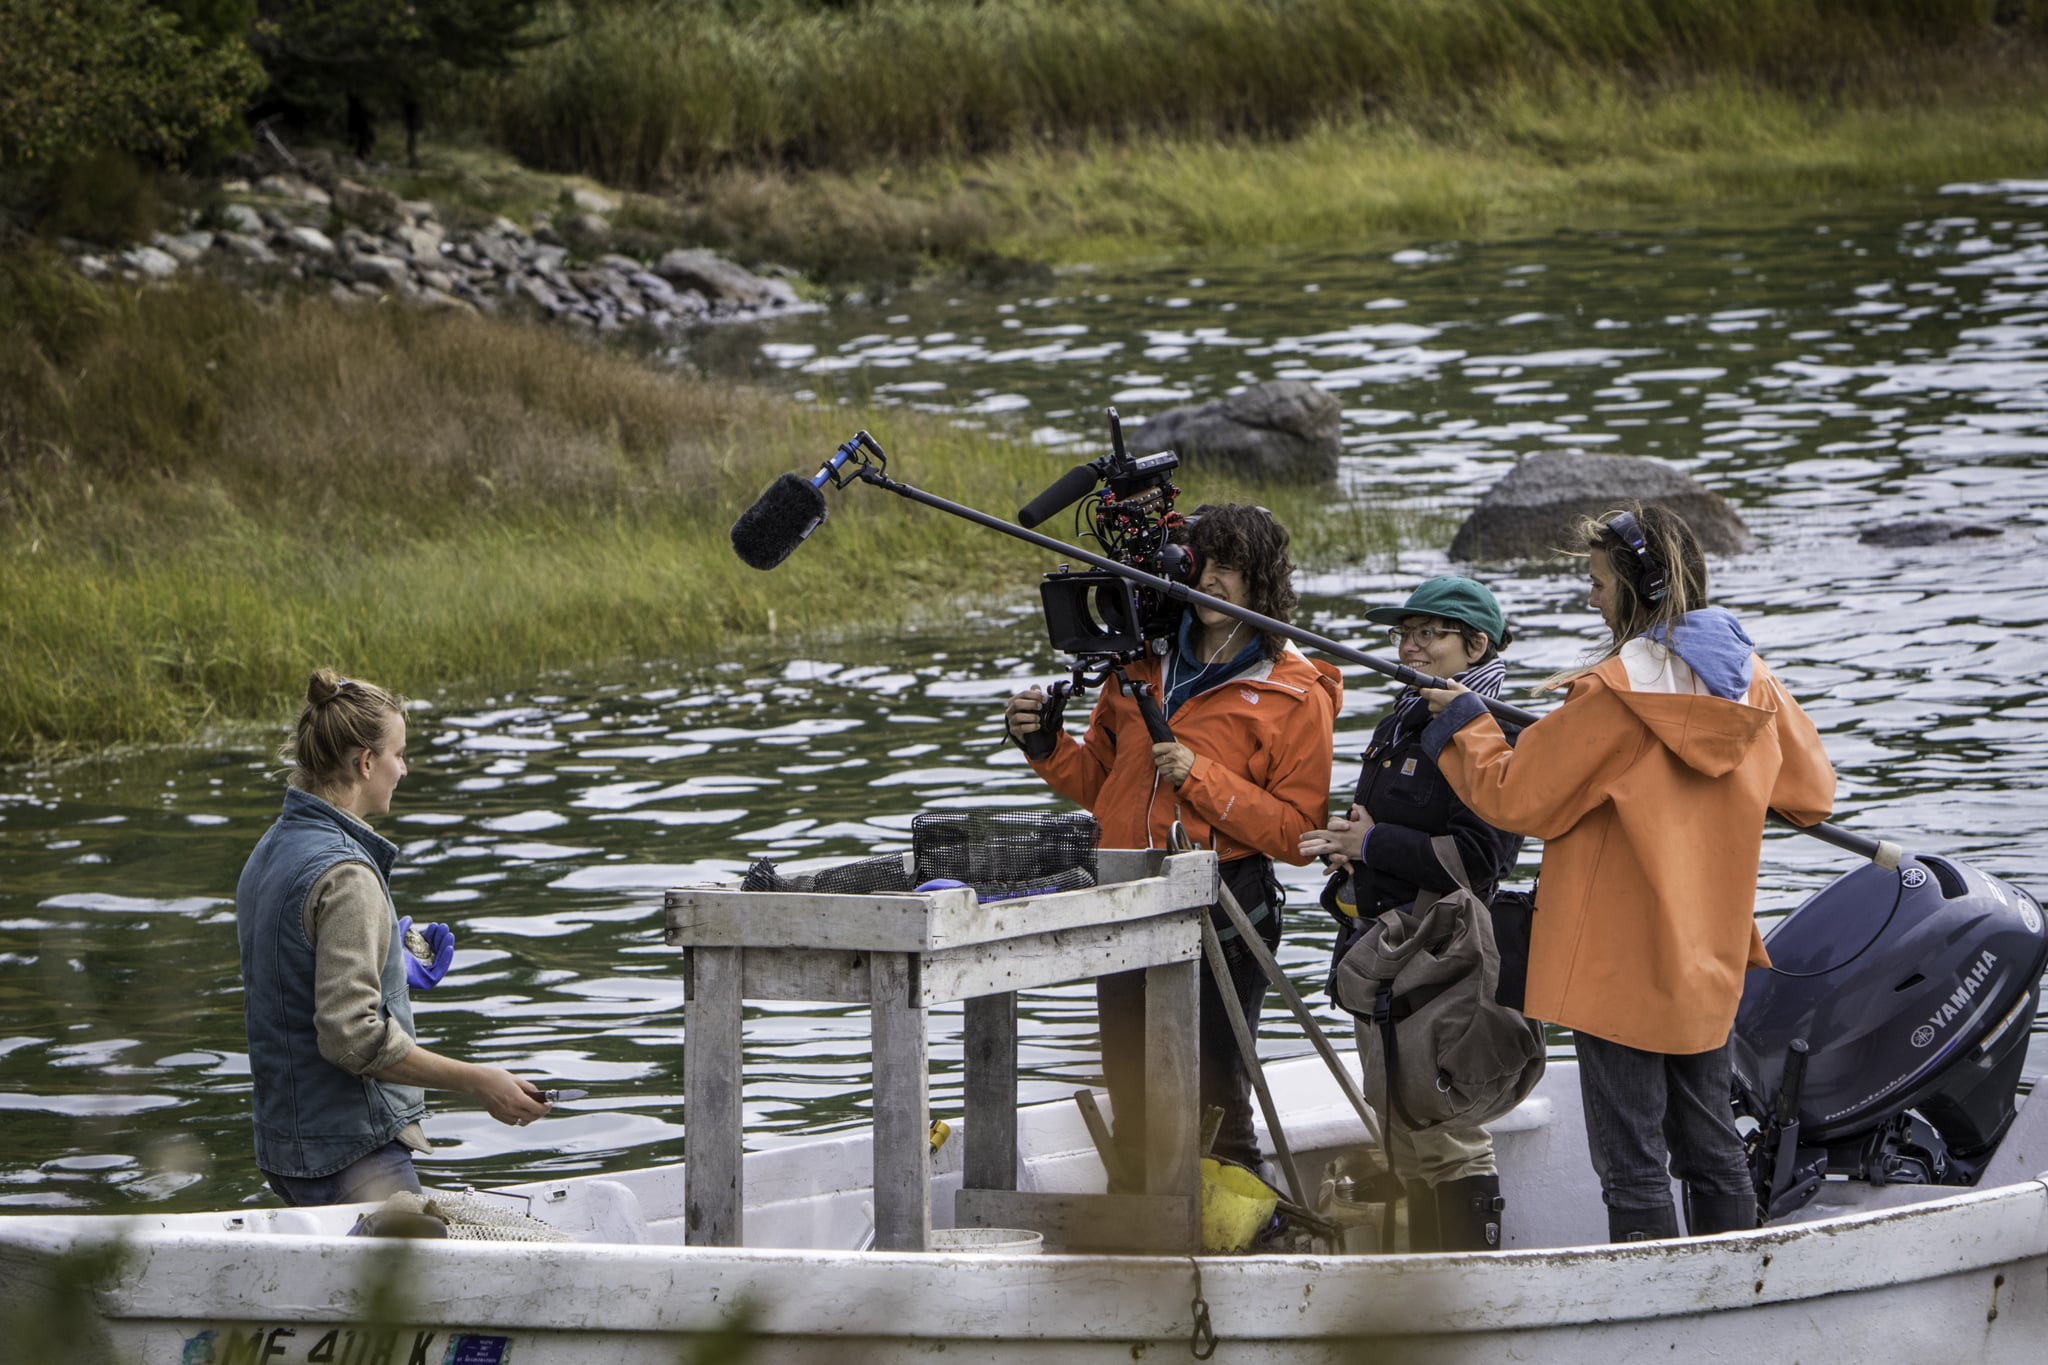 DEER ISLE, ME 9/3/17 10:30:37 AM The crew films Abby Barrows on her boat at Long Cove Sea Farm, her oyster farm in Deer Isle, Maine, on Sunday, September 3, 2017.  Photo by Sarah Rice